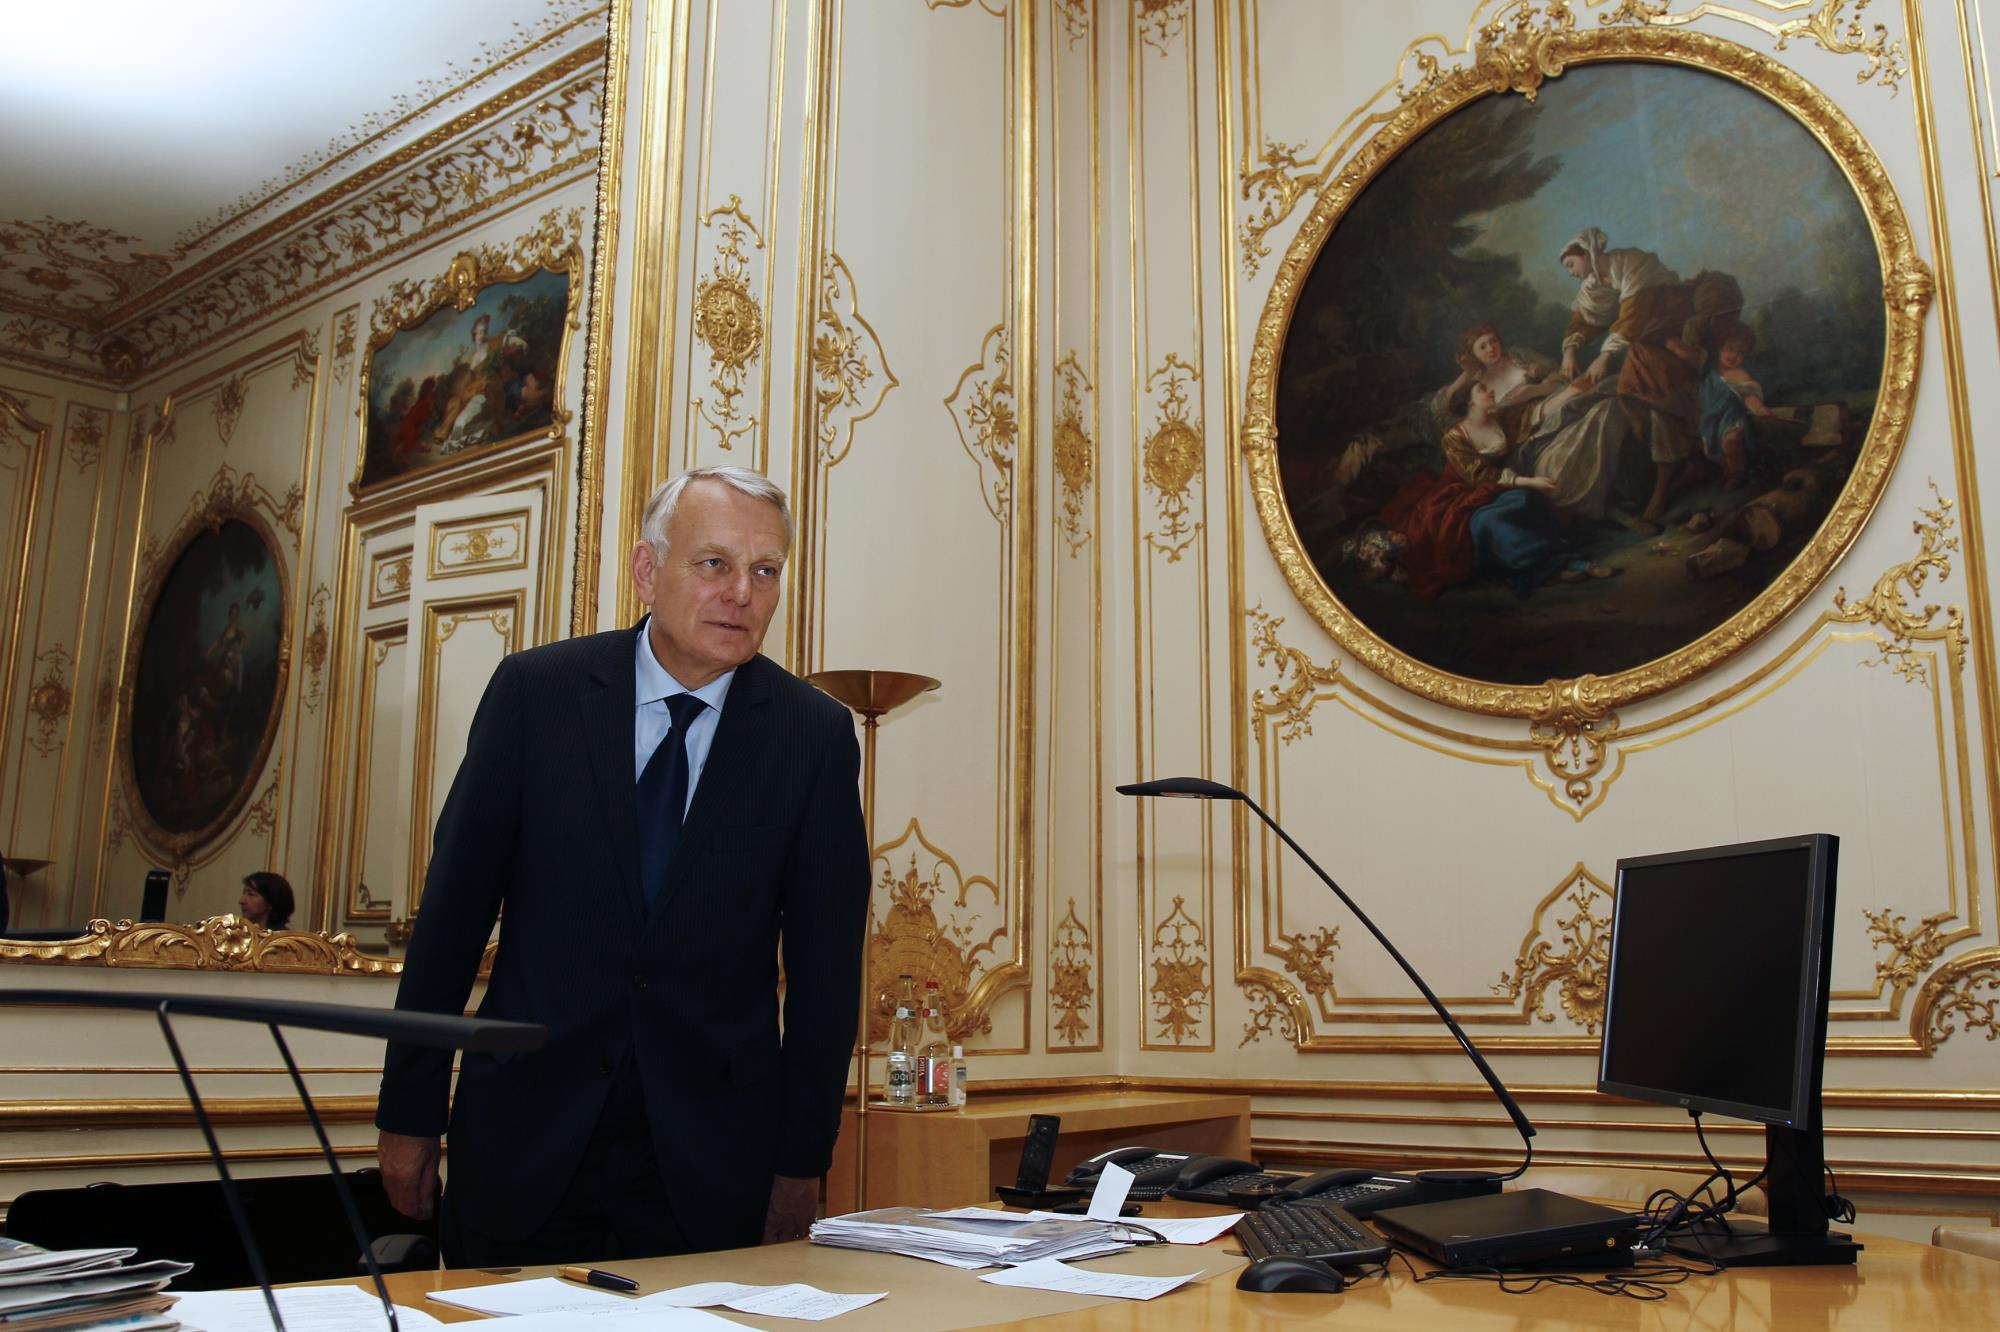 jean marc ayrault le bureau vide de l 39 ex premier ministre paris match. Black Bedroom Furniture Sets. Home Design Ideas